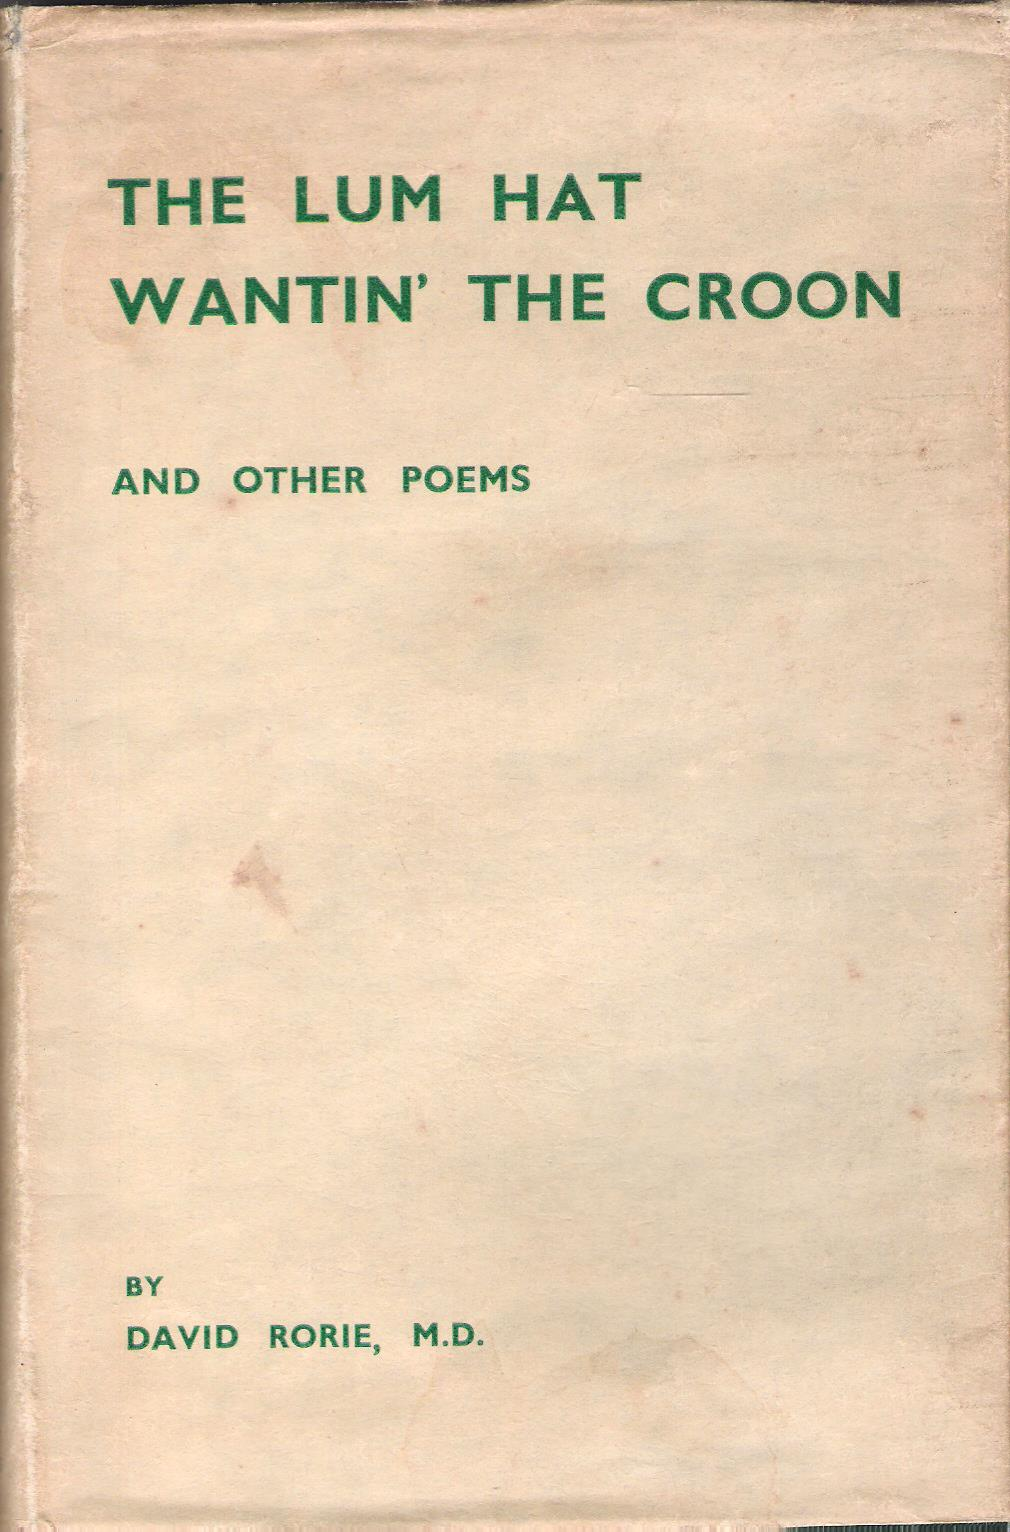 Image for The Lum Hat Wantin' the Croon and Other Poems.